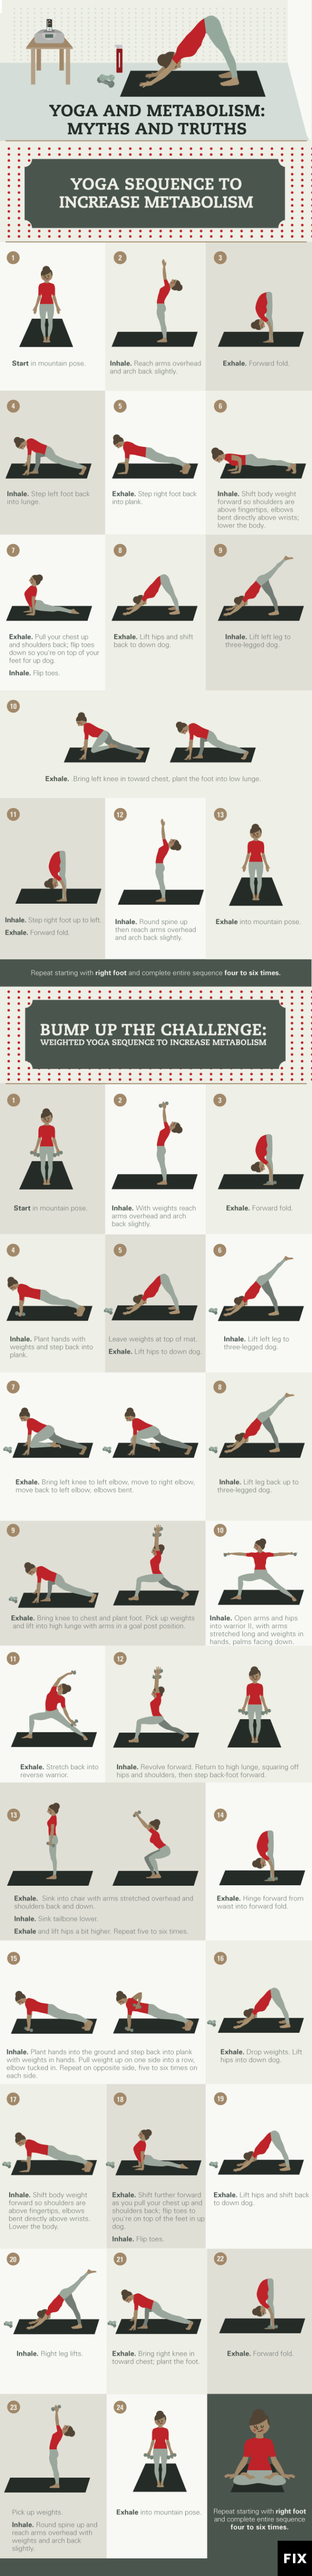 yoga-metabolism-myths-and-truths